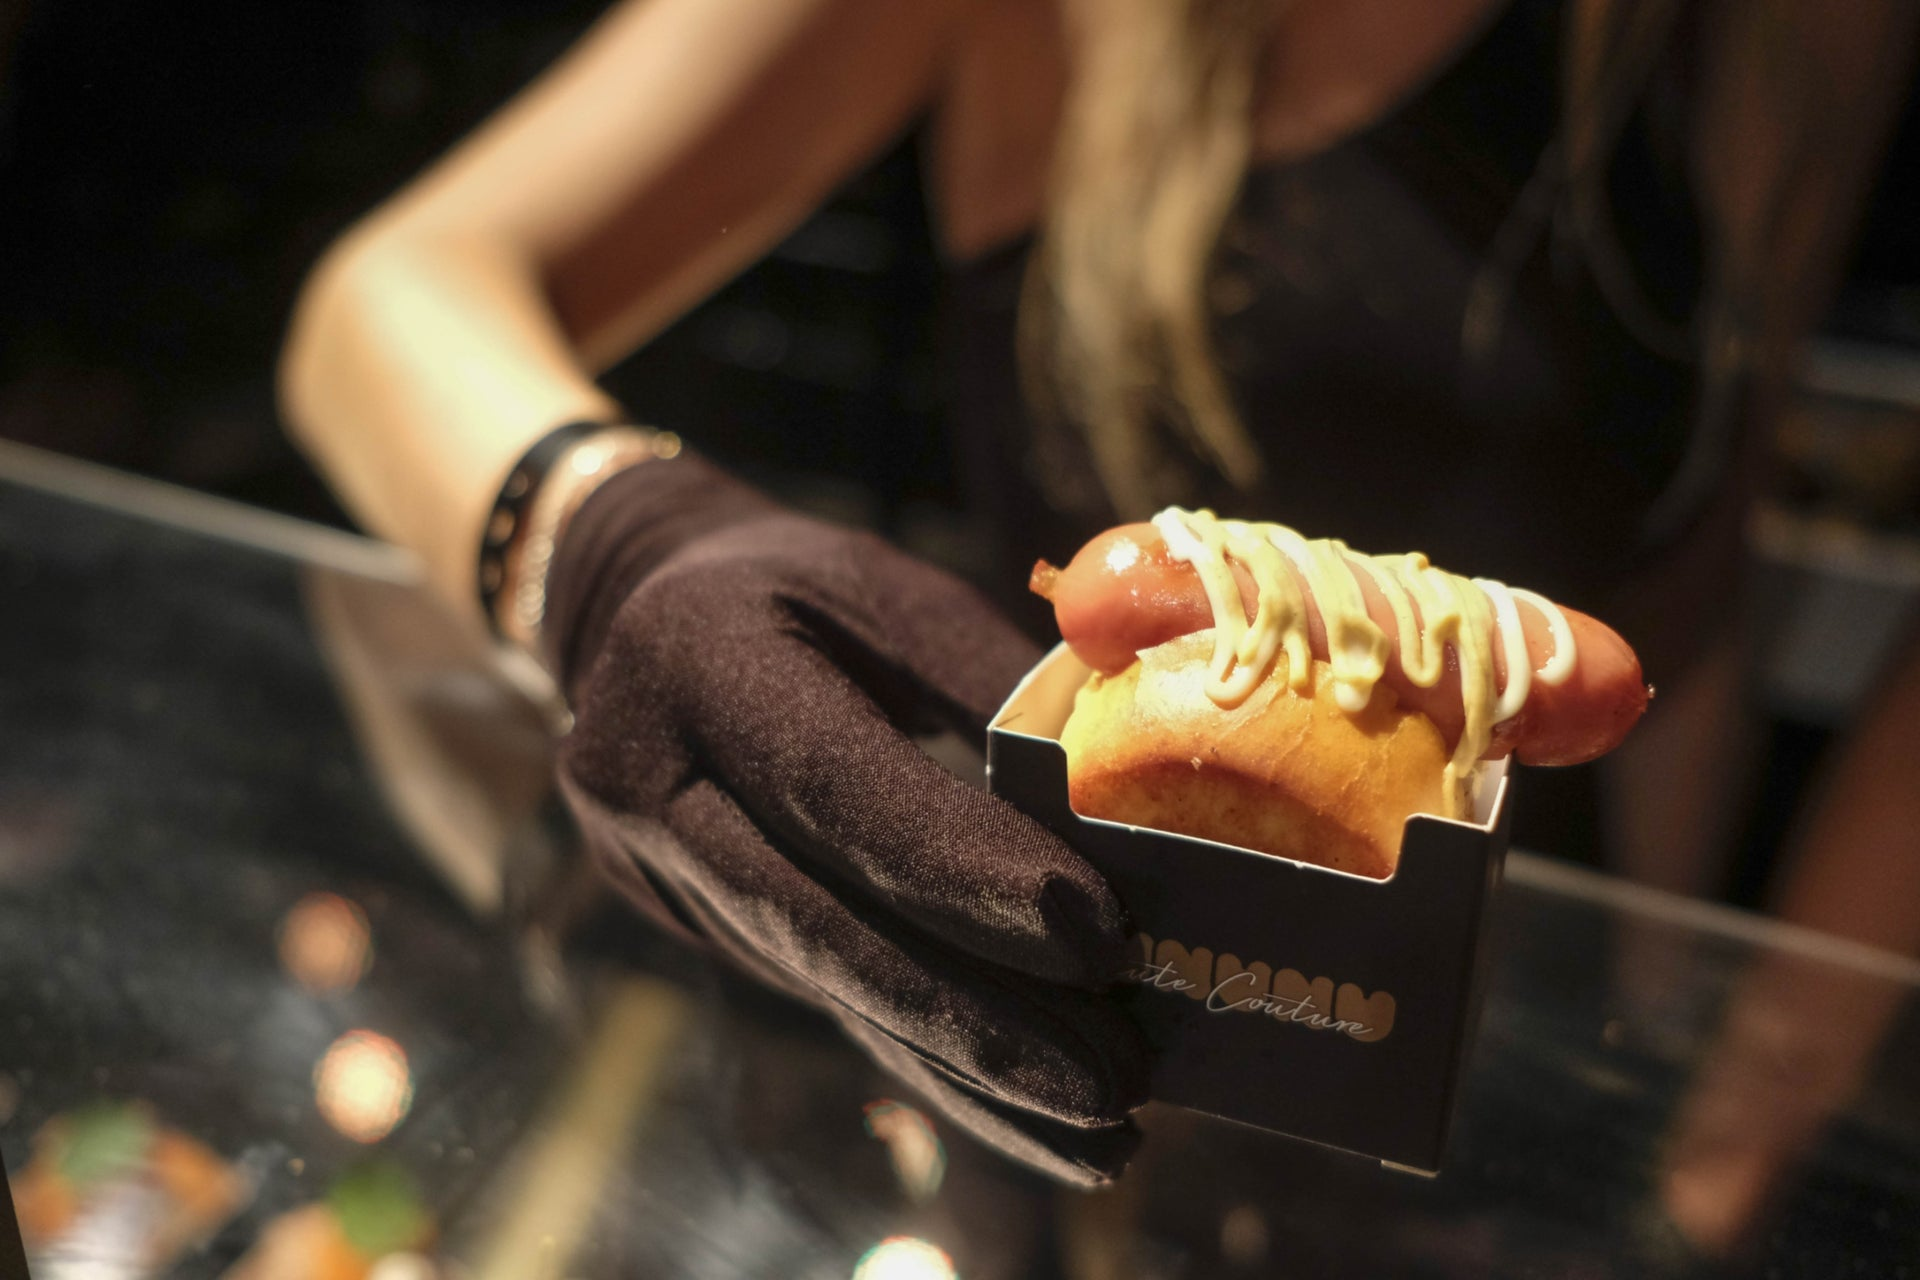 A guest is holding a hot dog served in a branded box with Raidman's name on it.